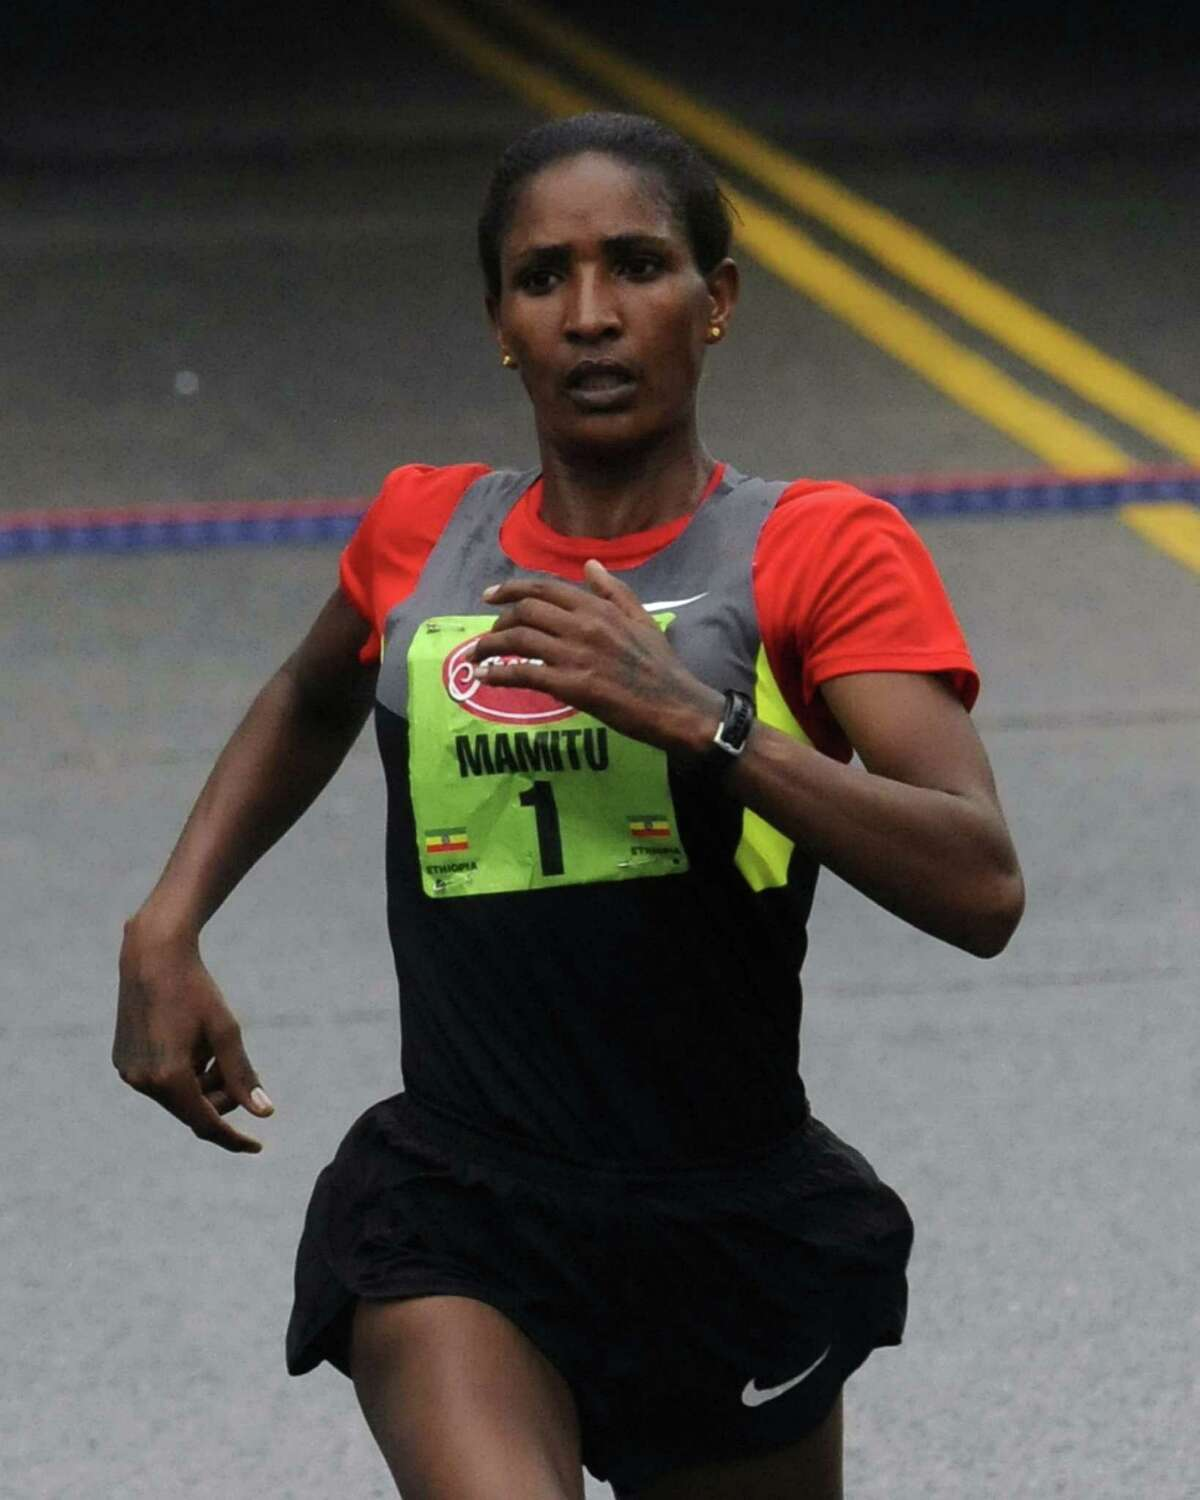 Mamitu Daska wins the 34th annual Freihofer's Run for Women in Albany N.Y. Saturday June 2, 2012. (Michael P. Farrell/Times Union)